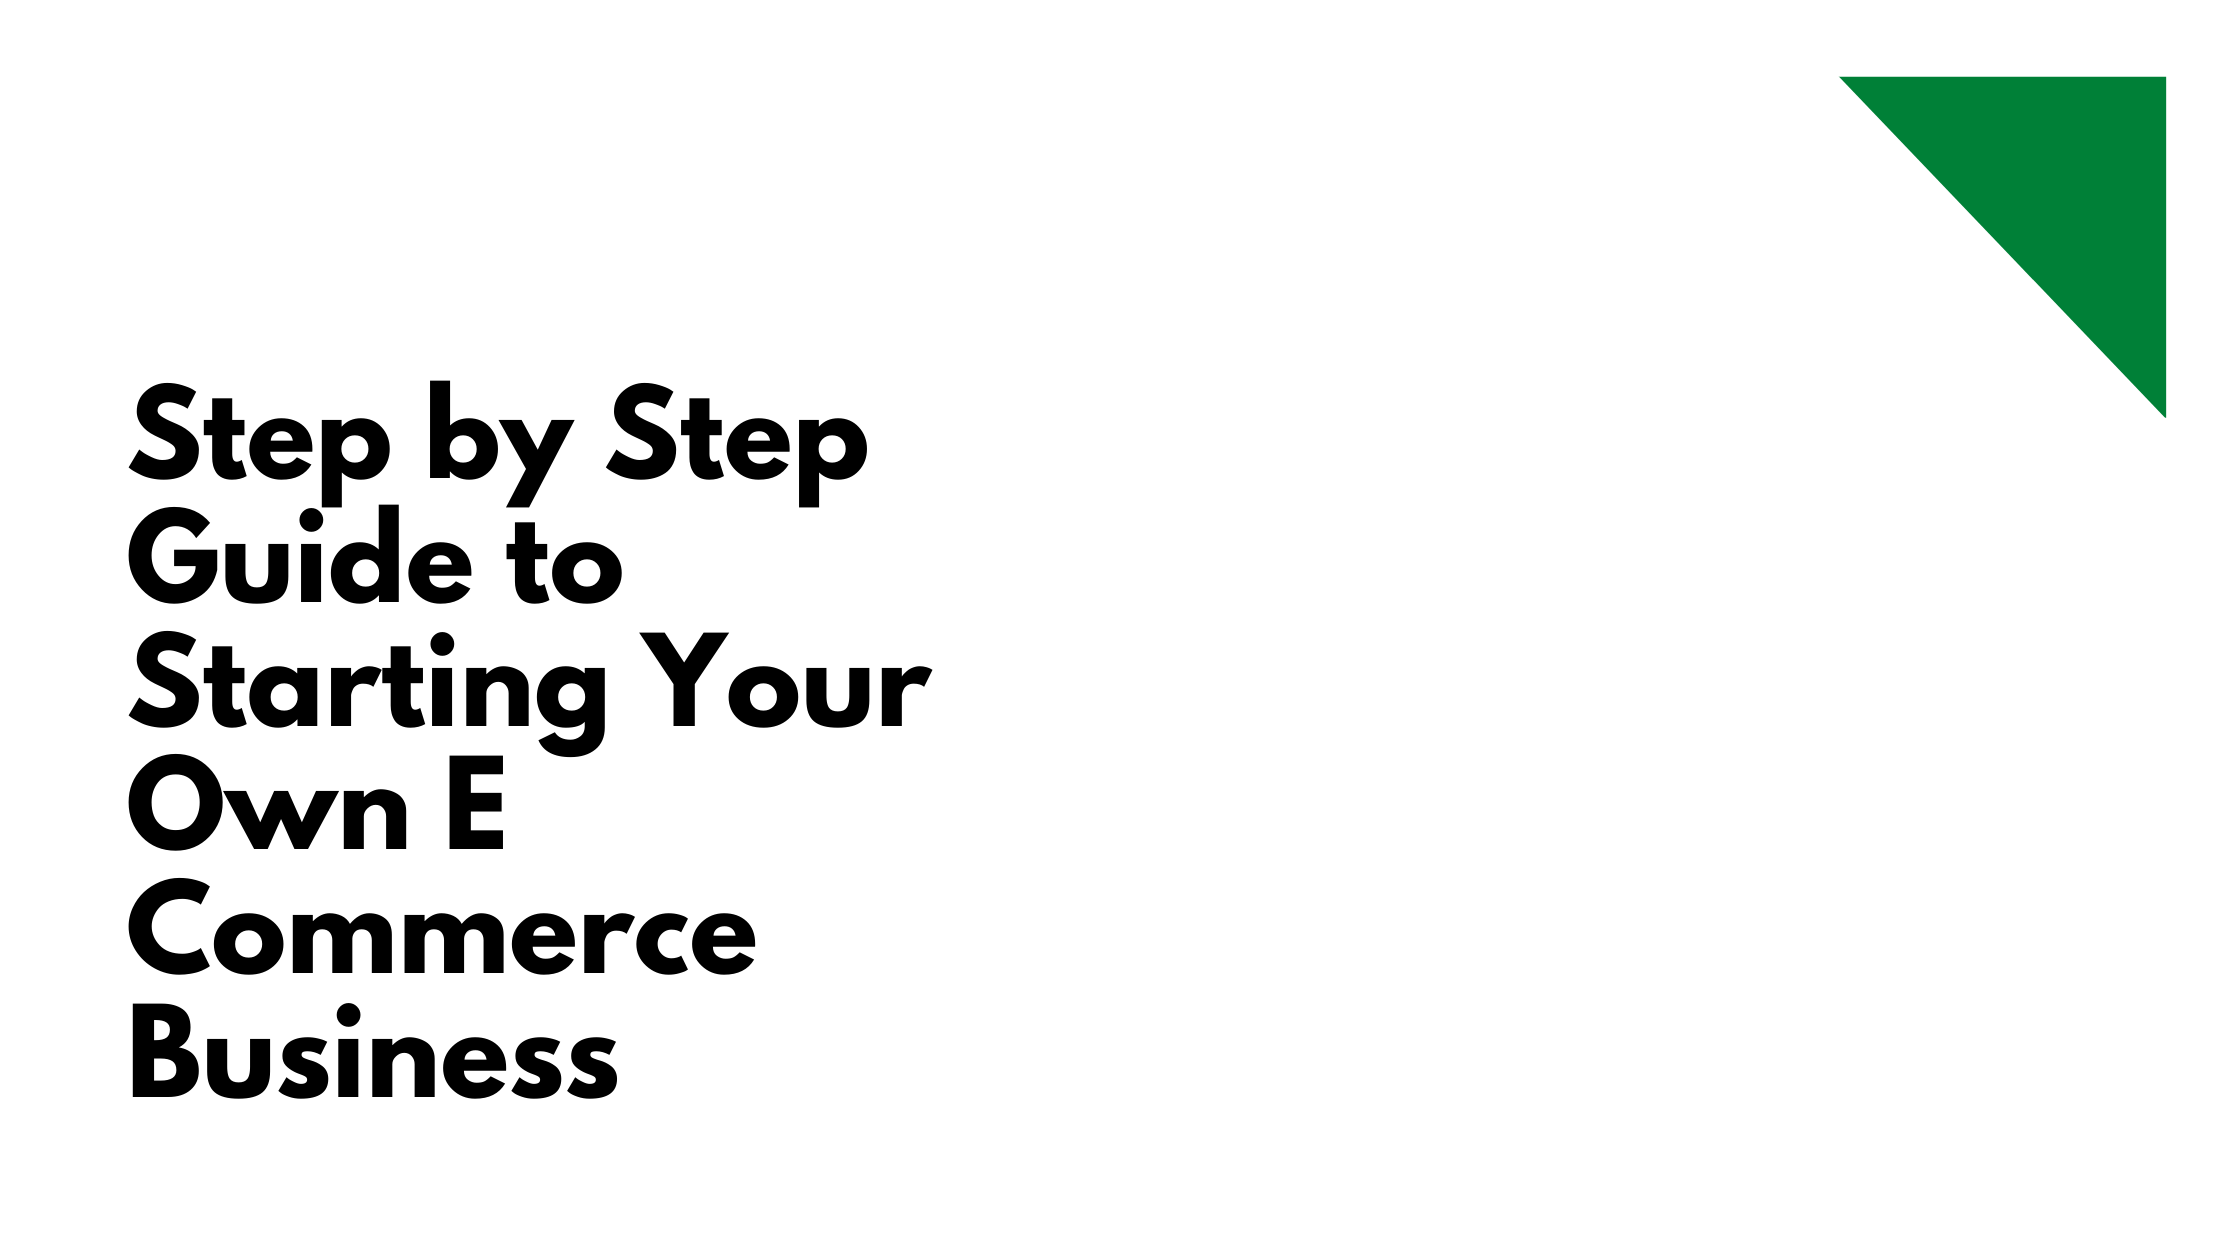 Step by Step Guide to Starting Your Own E Commerce Business